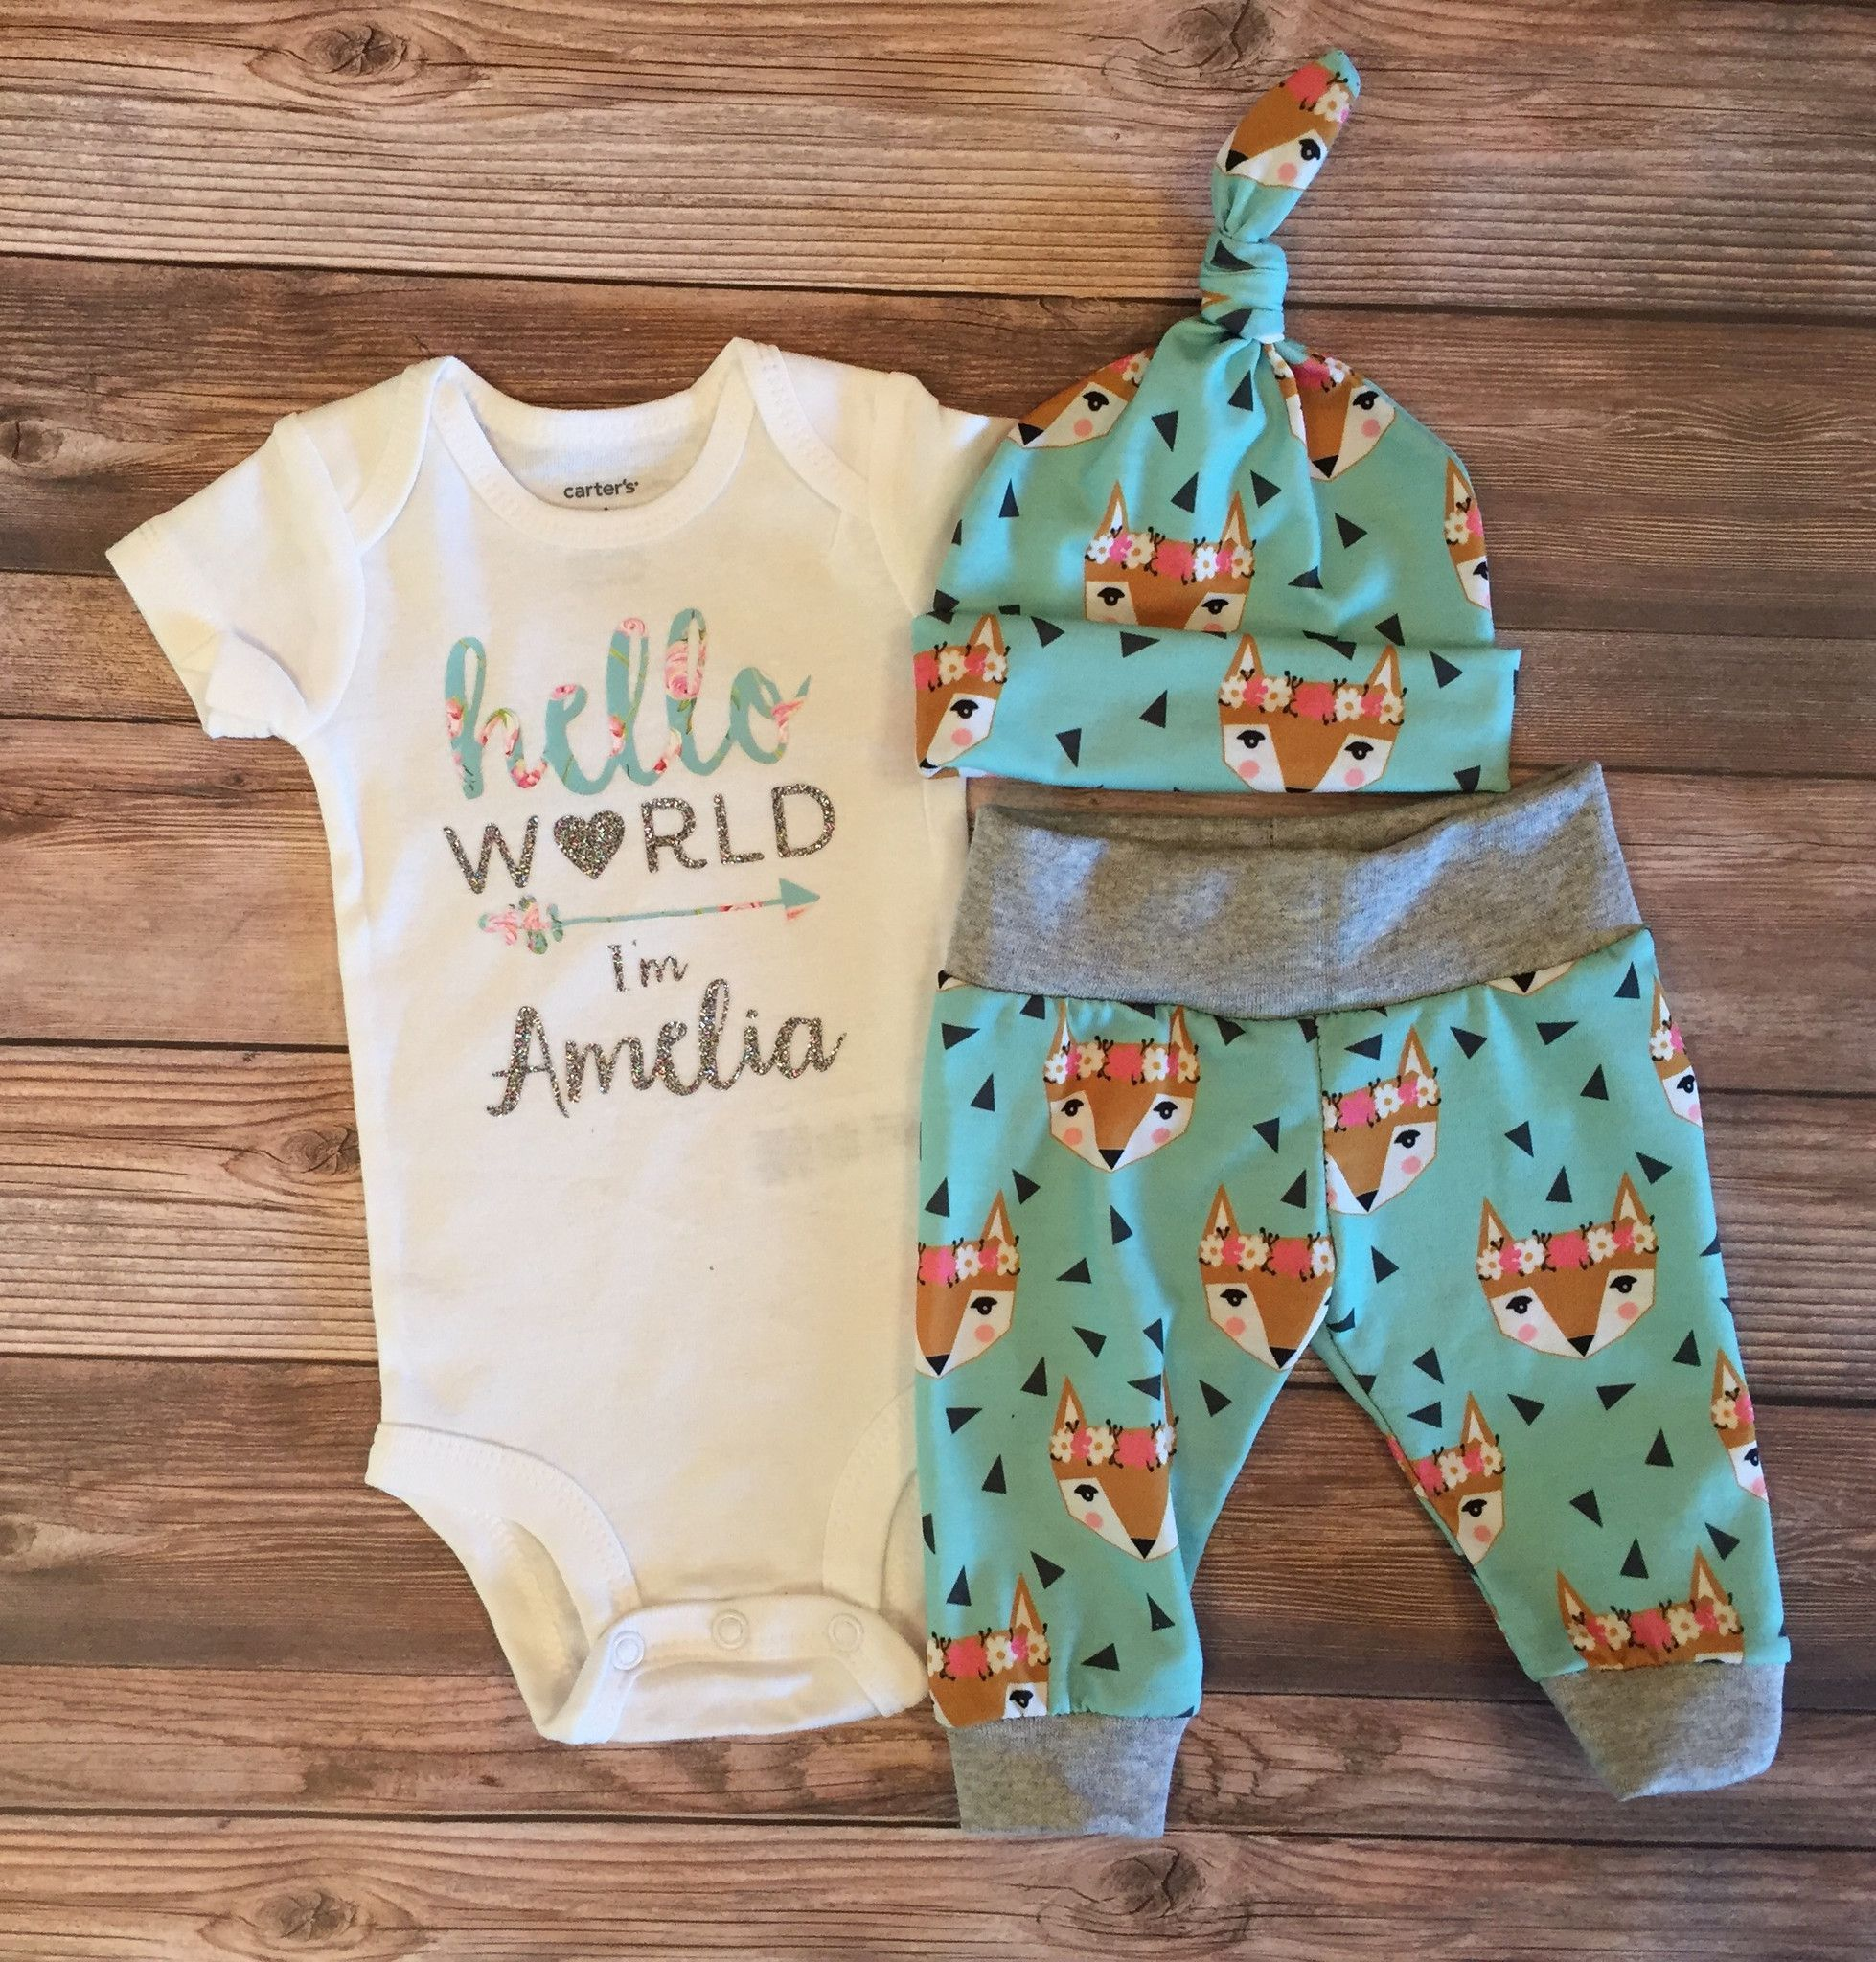 Gray Foxes Baby Boy Gown Fox Gown Gray Foxes Blue Boy Infant Gown Newborn Gown Going  Home Outfit Boy Clothing Boy Infant Outfit Clothing